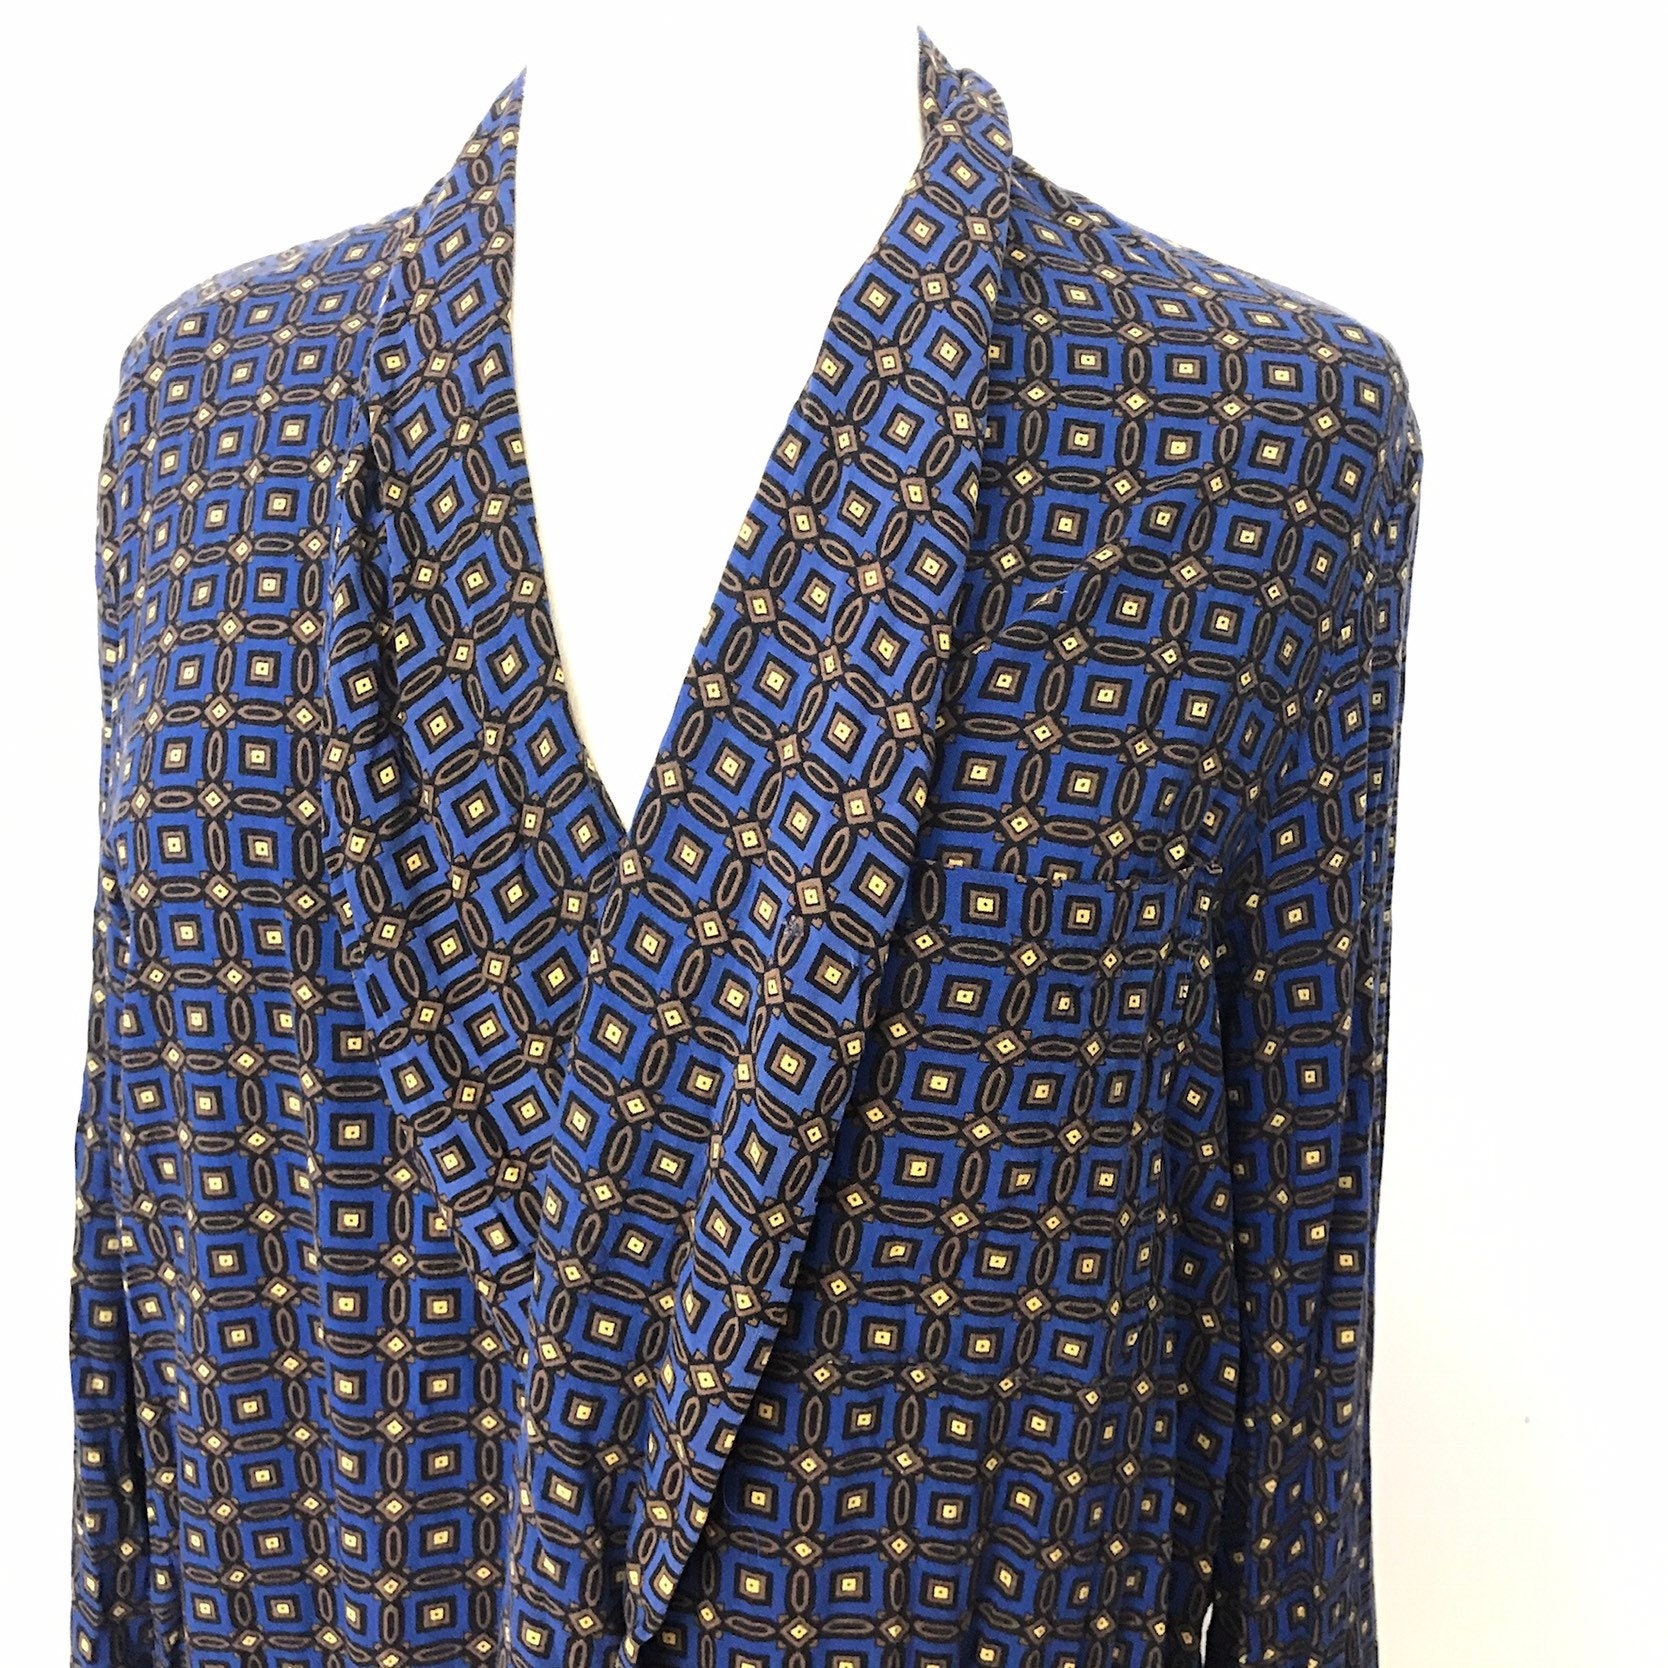 3881493a9 Vintage dressing gown paisley smoking jacket blue yellow, 1940s ...